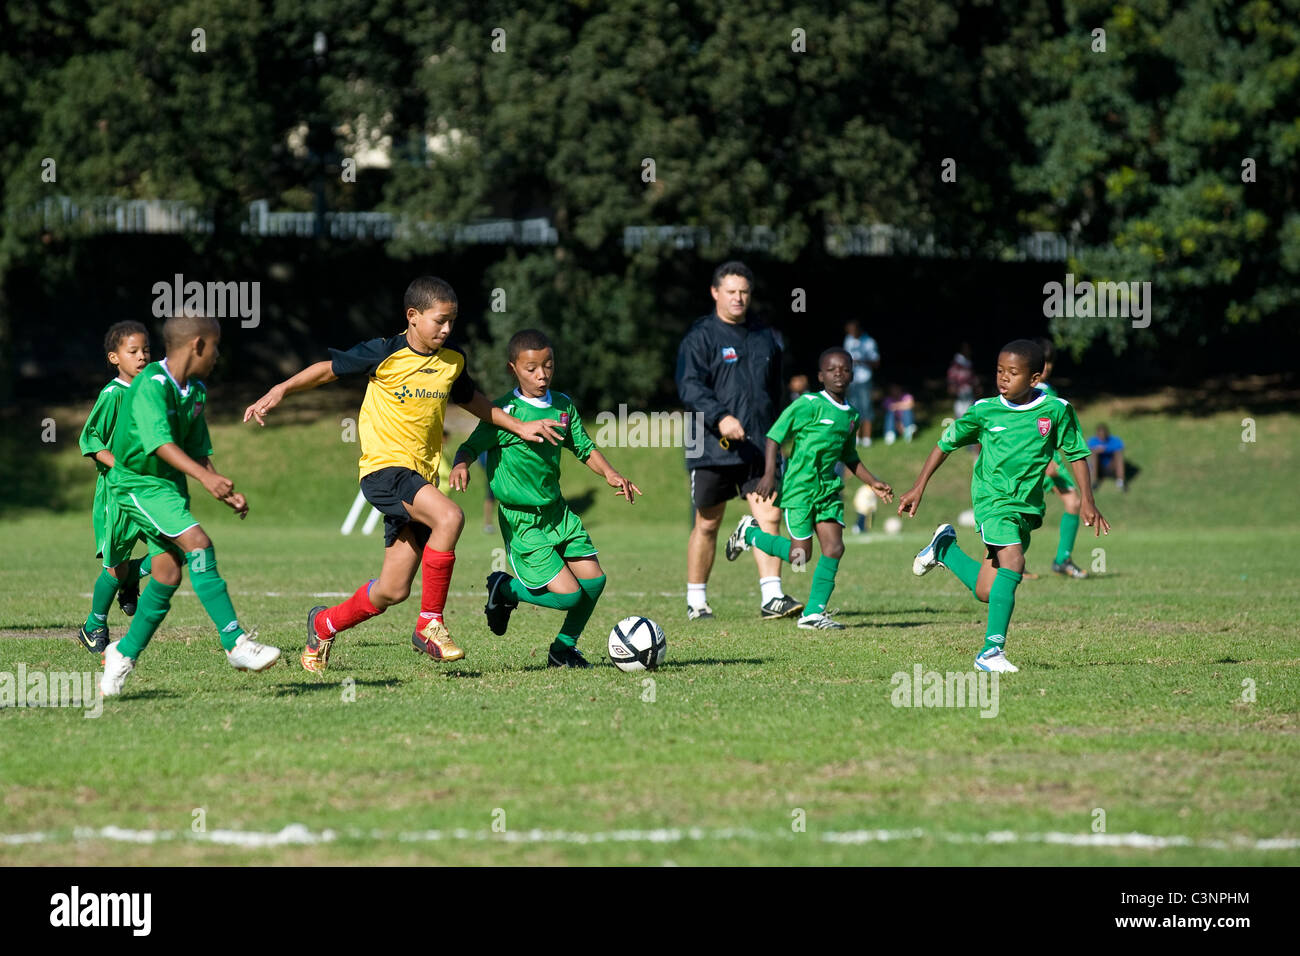 Young football players of an U11 team dribbling referee watching Cape Town South Africa - Stock Image